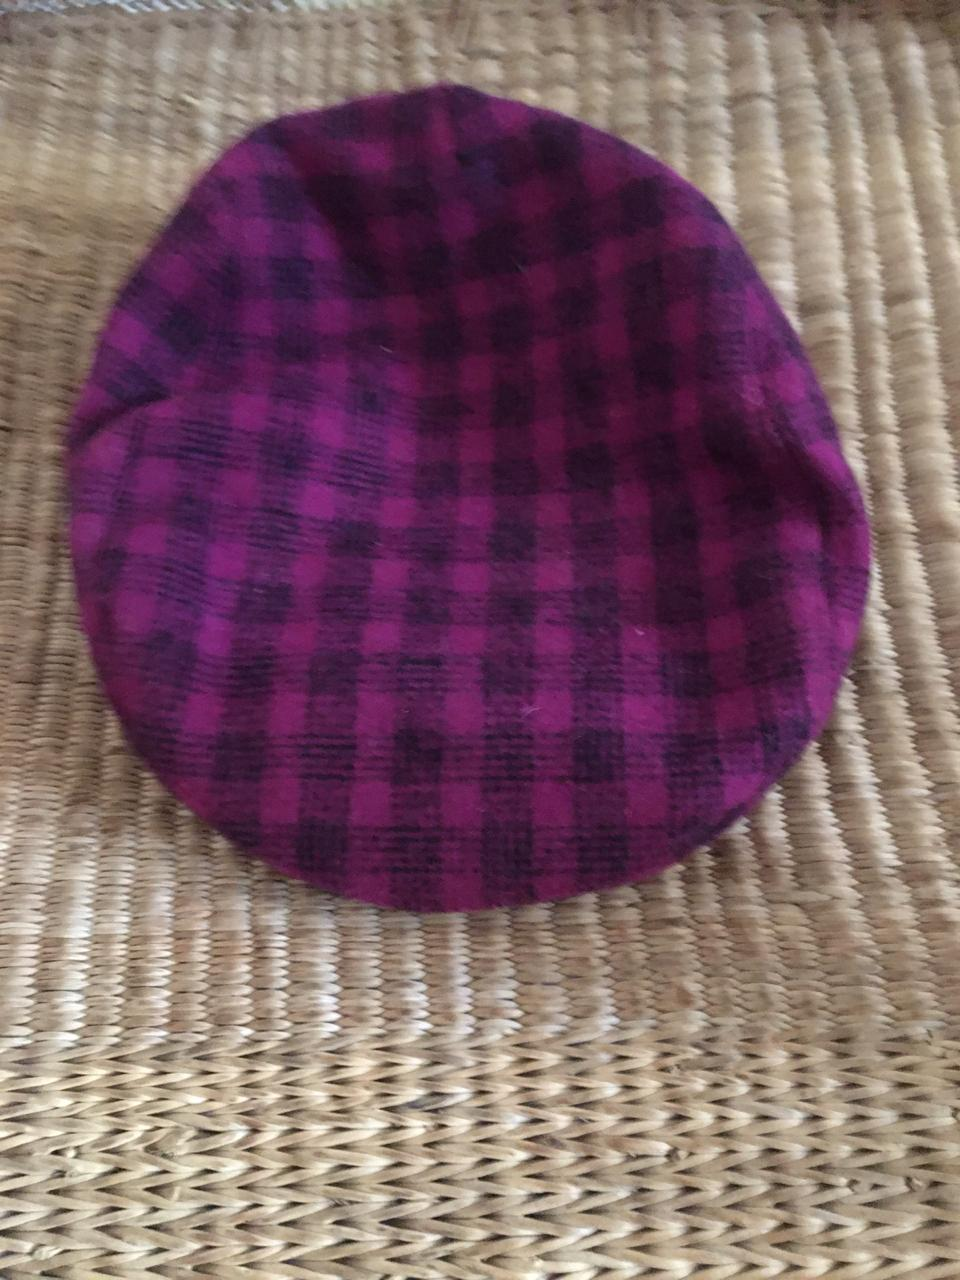 Vintage Purple & Black Gingham Print Flat top Cap